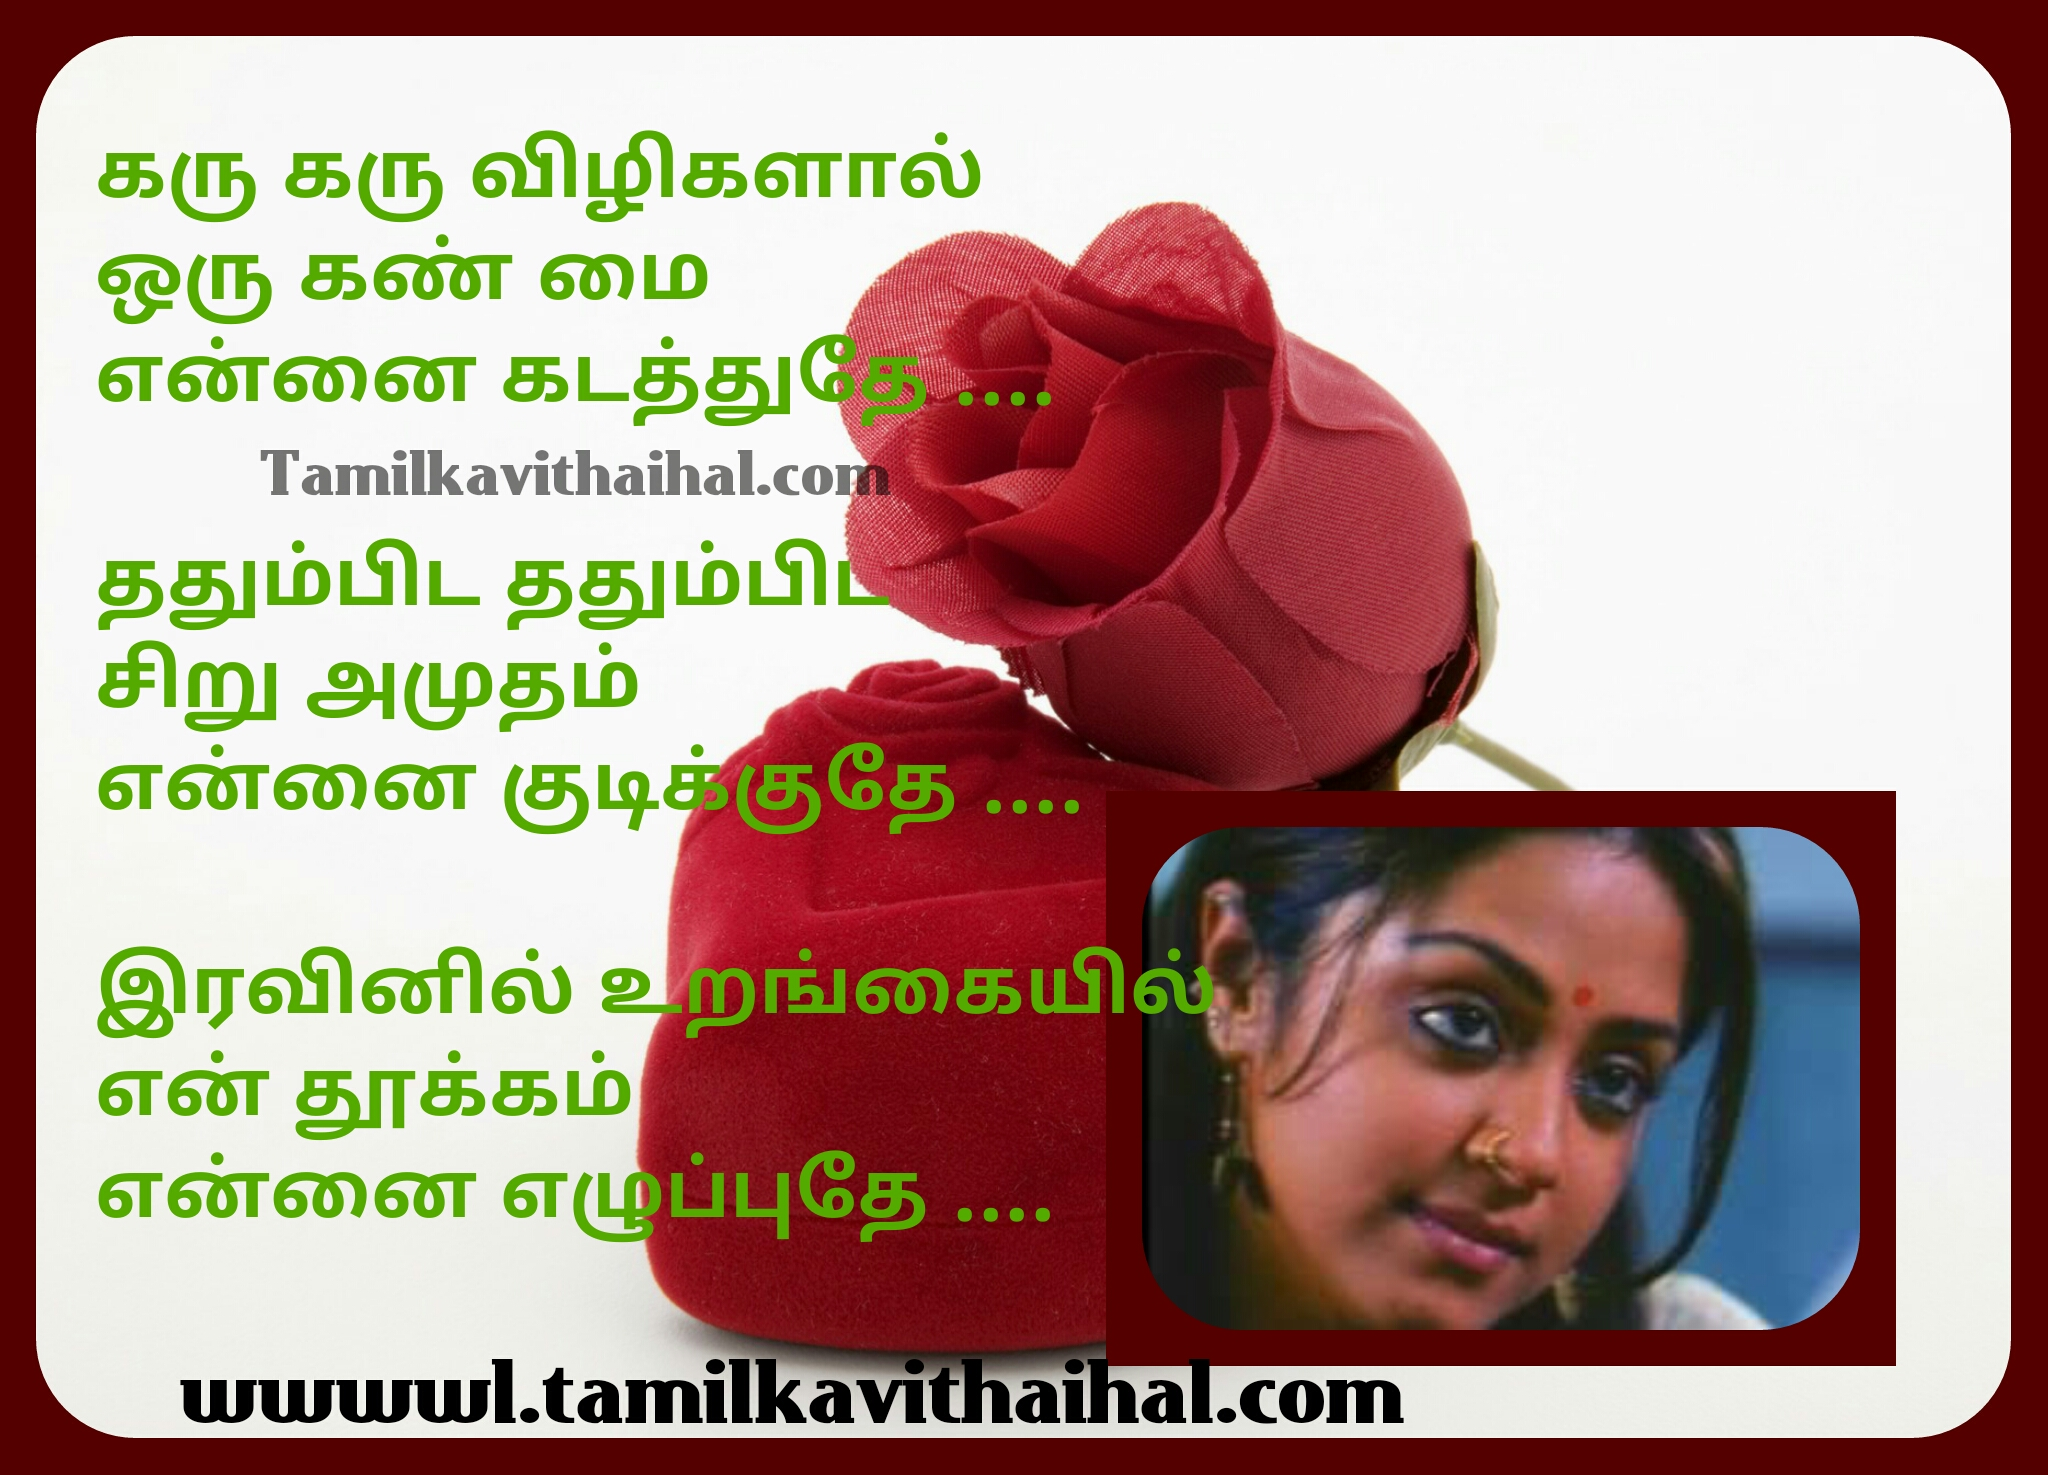 Best love song tamil lyrics dp status quotes download